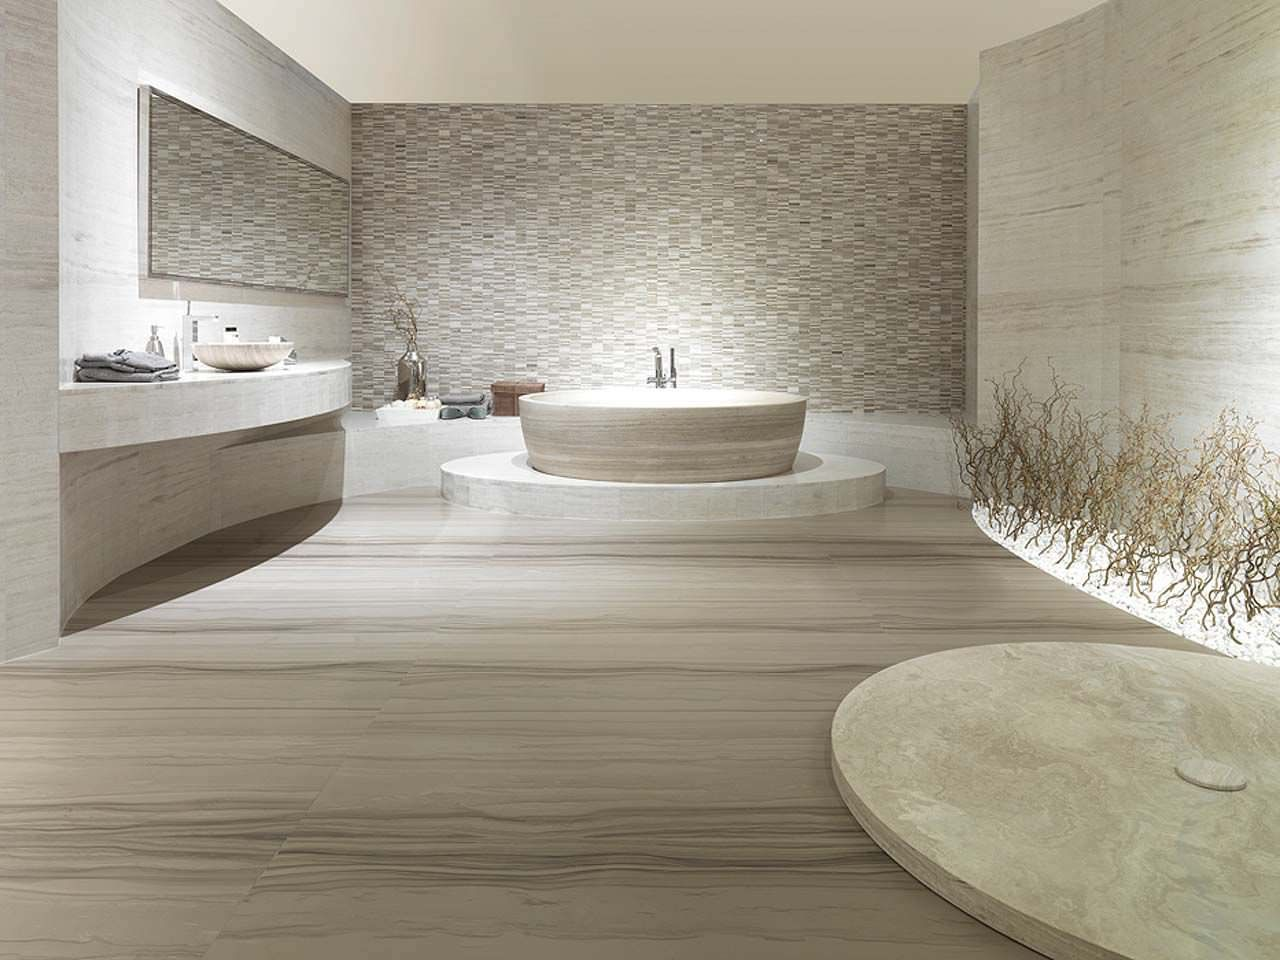 Carrelage de salle de bain de sol en travertin poli travertino silk wood porcelanosa box for Porcelanosa salle de bain